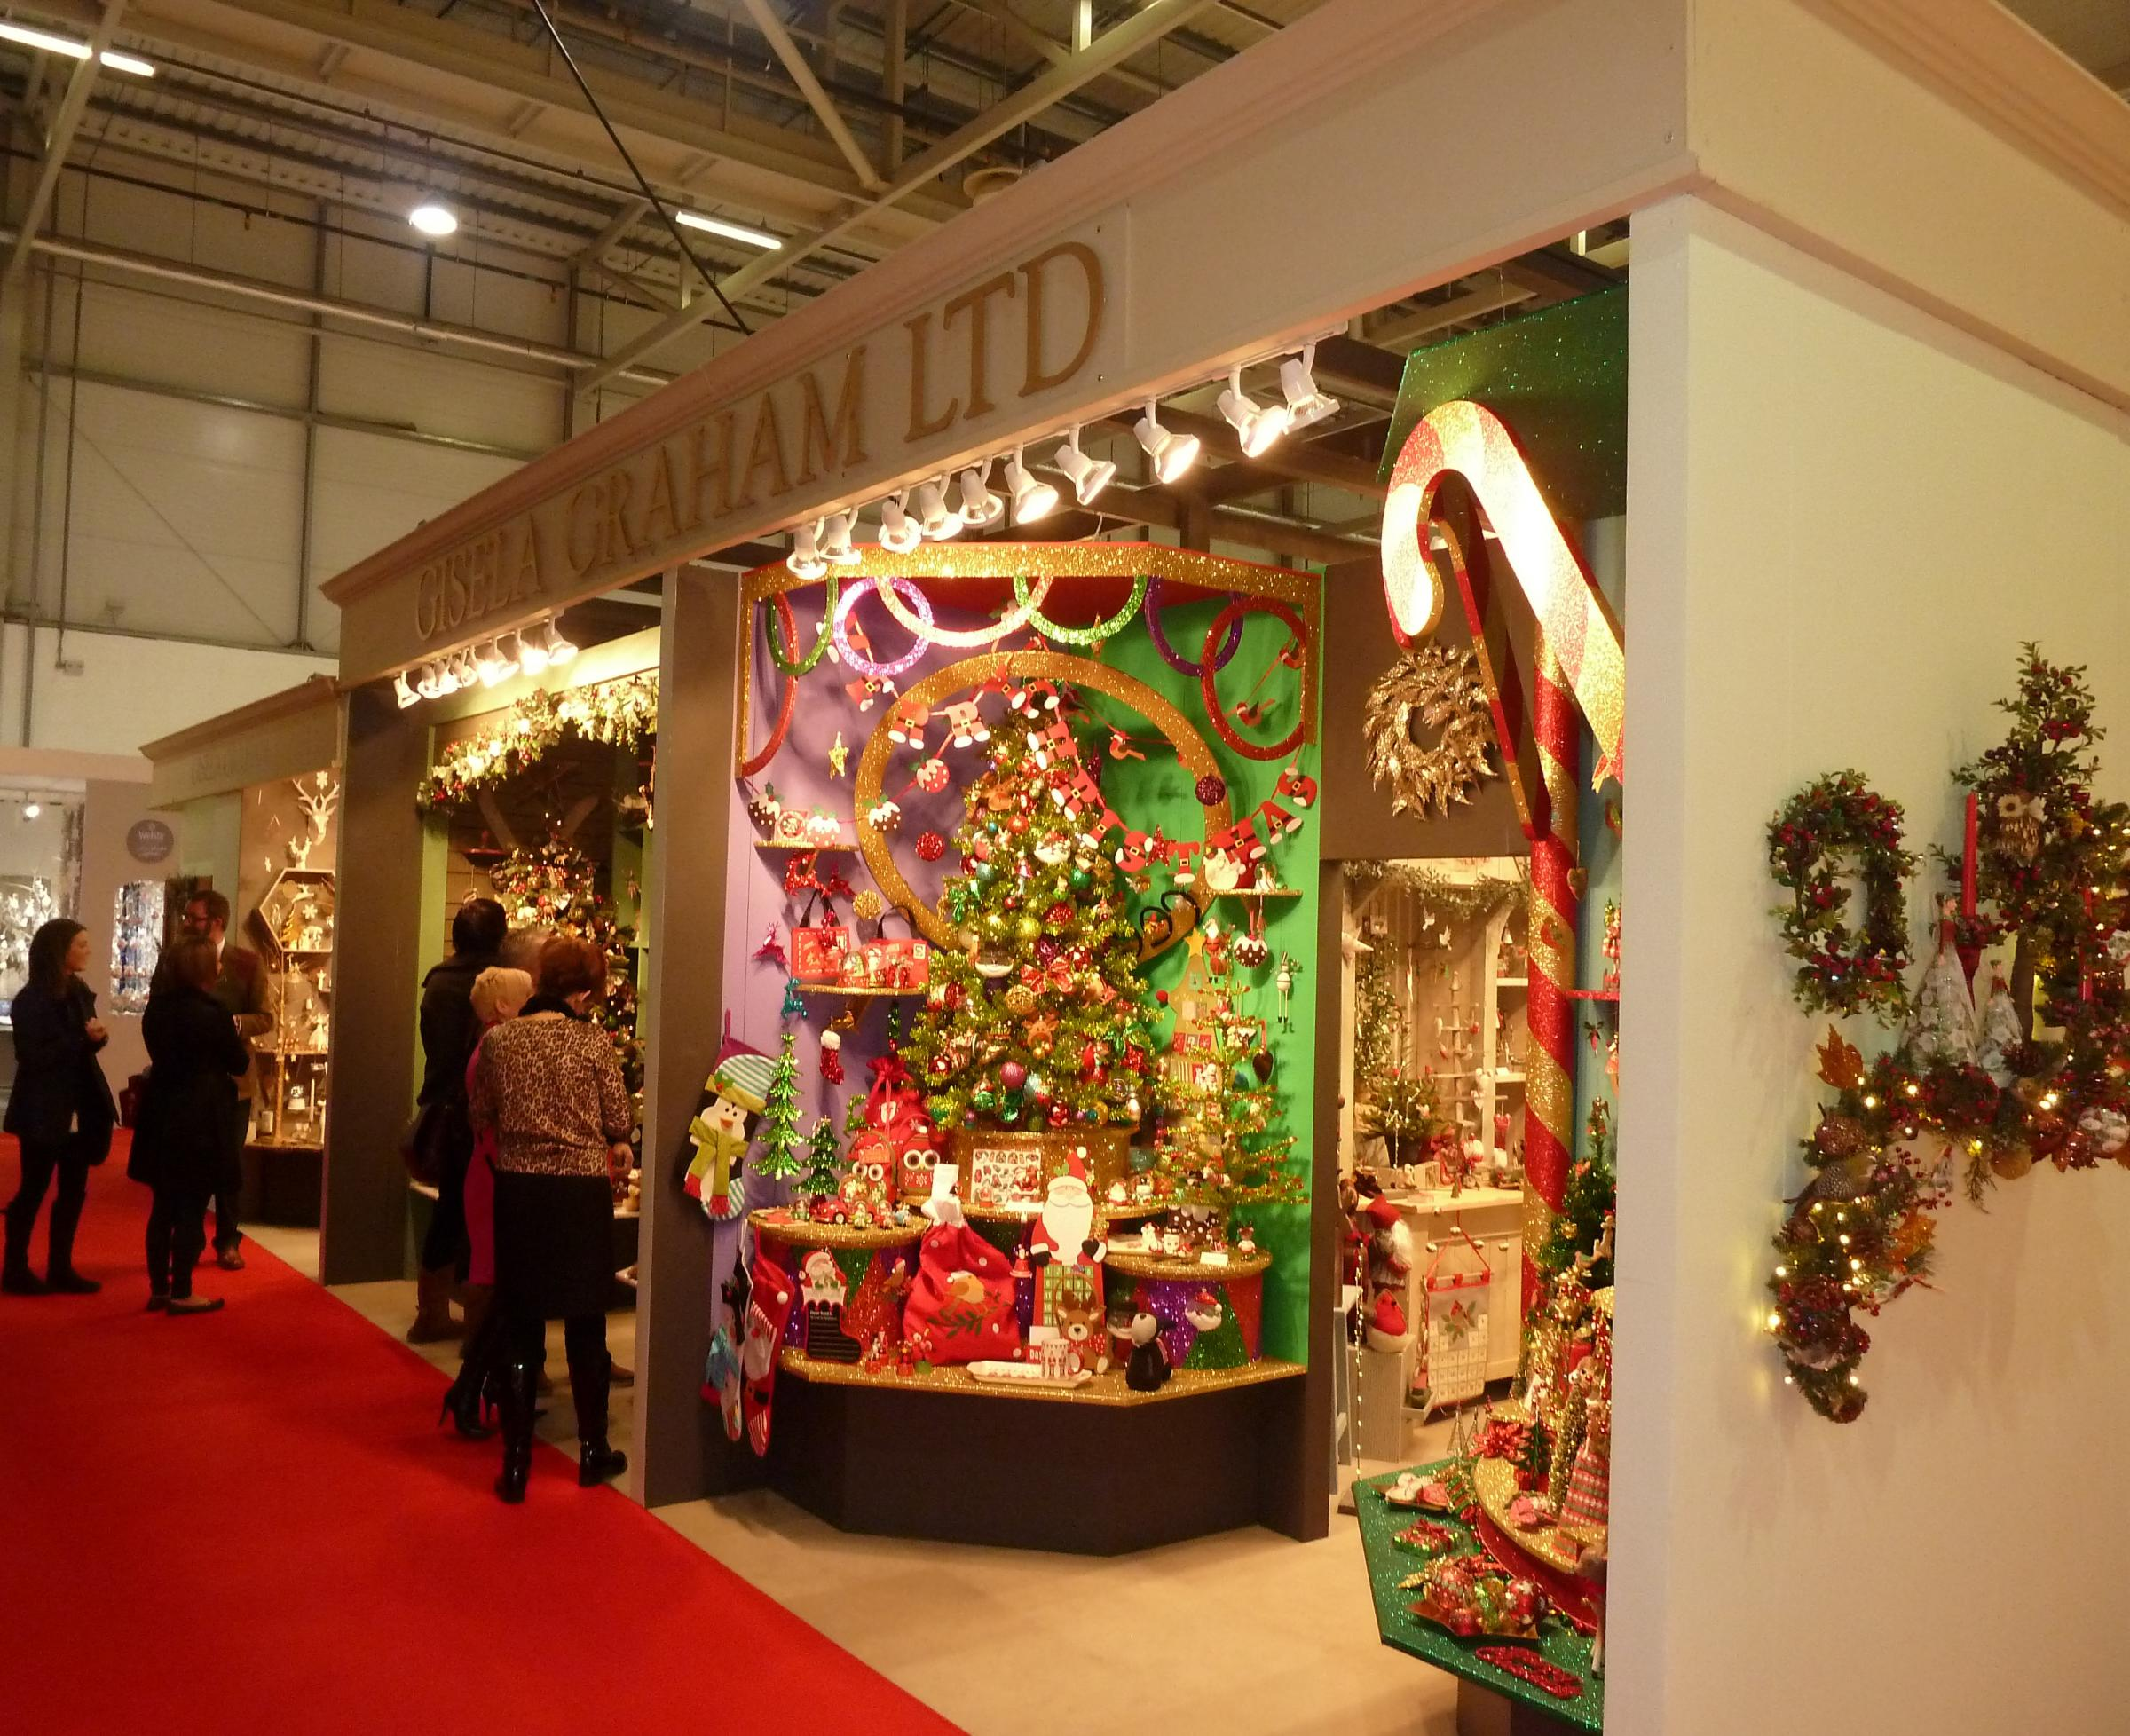 The Harrogate Christmas and Gift Fair